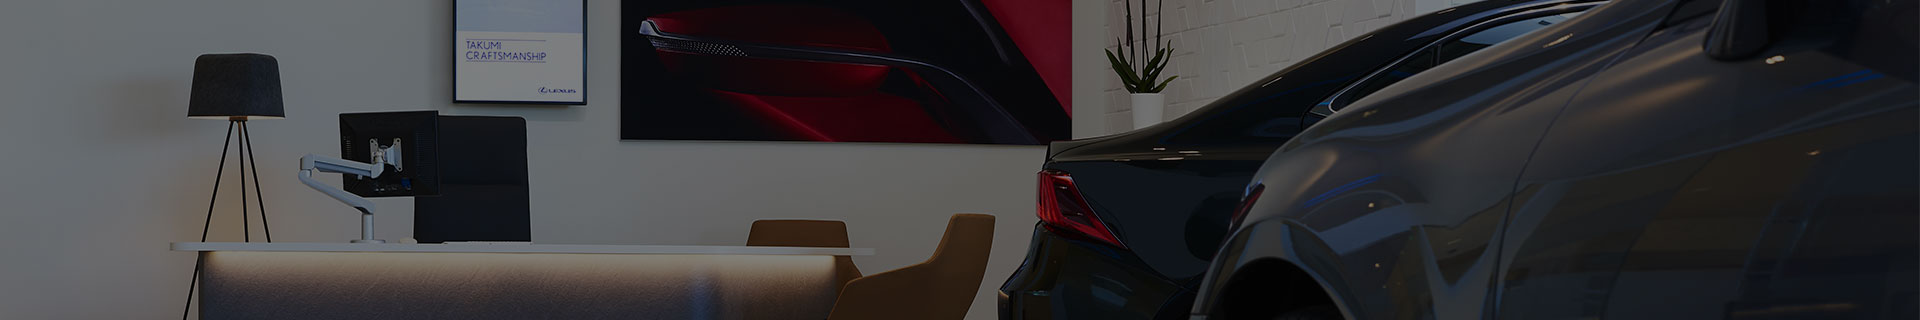 2020 lexus uk dealer finder lifestyle